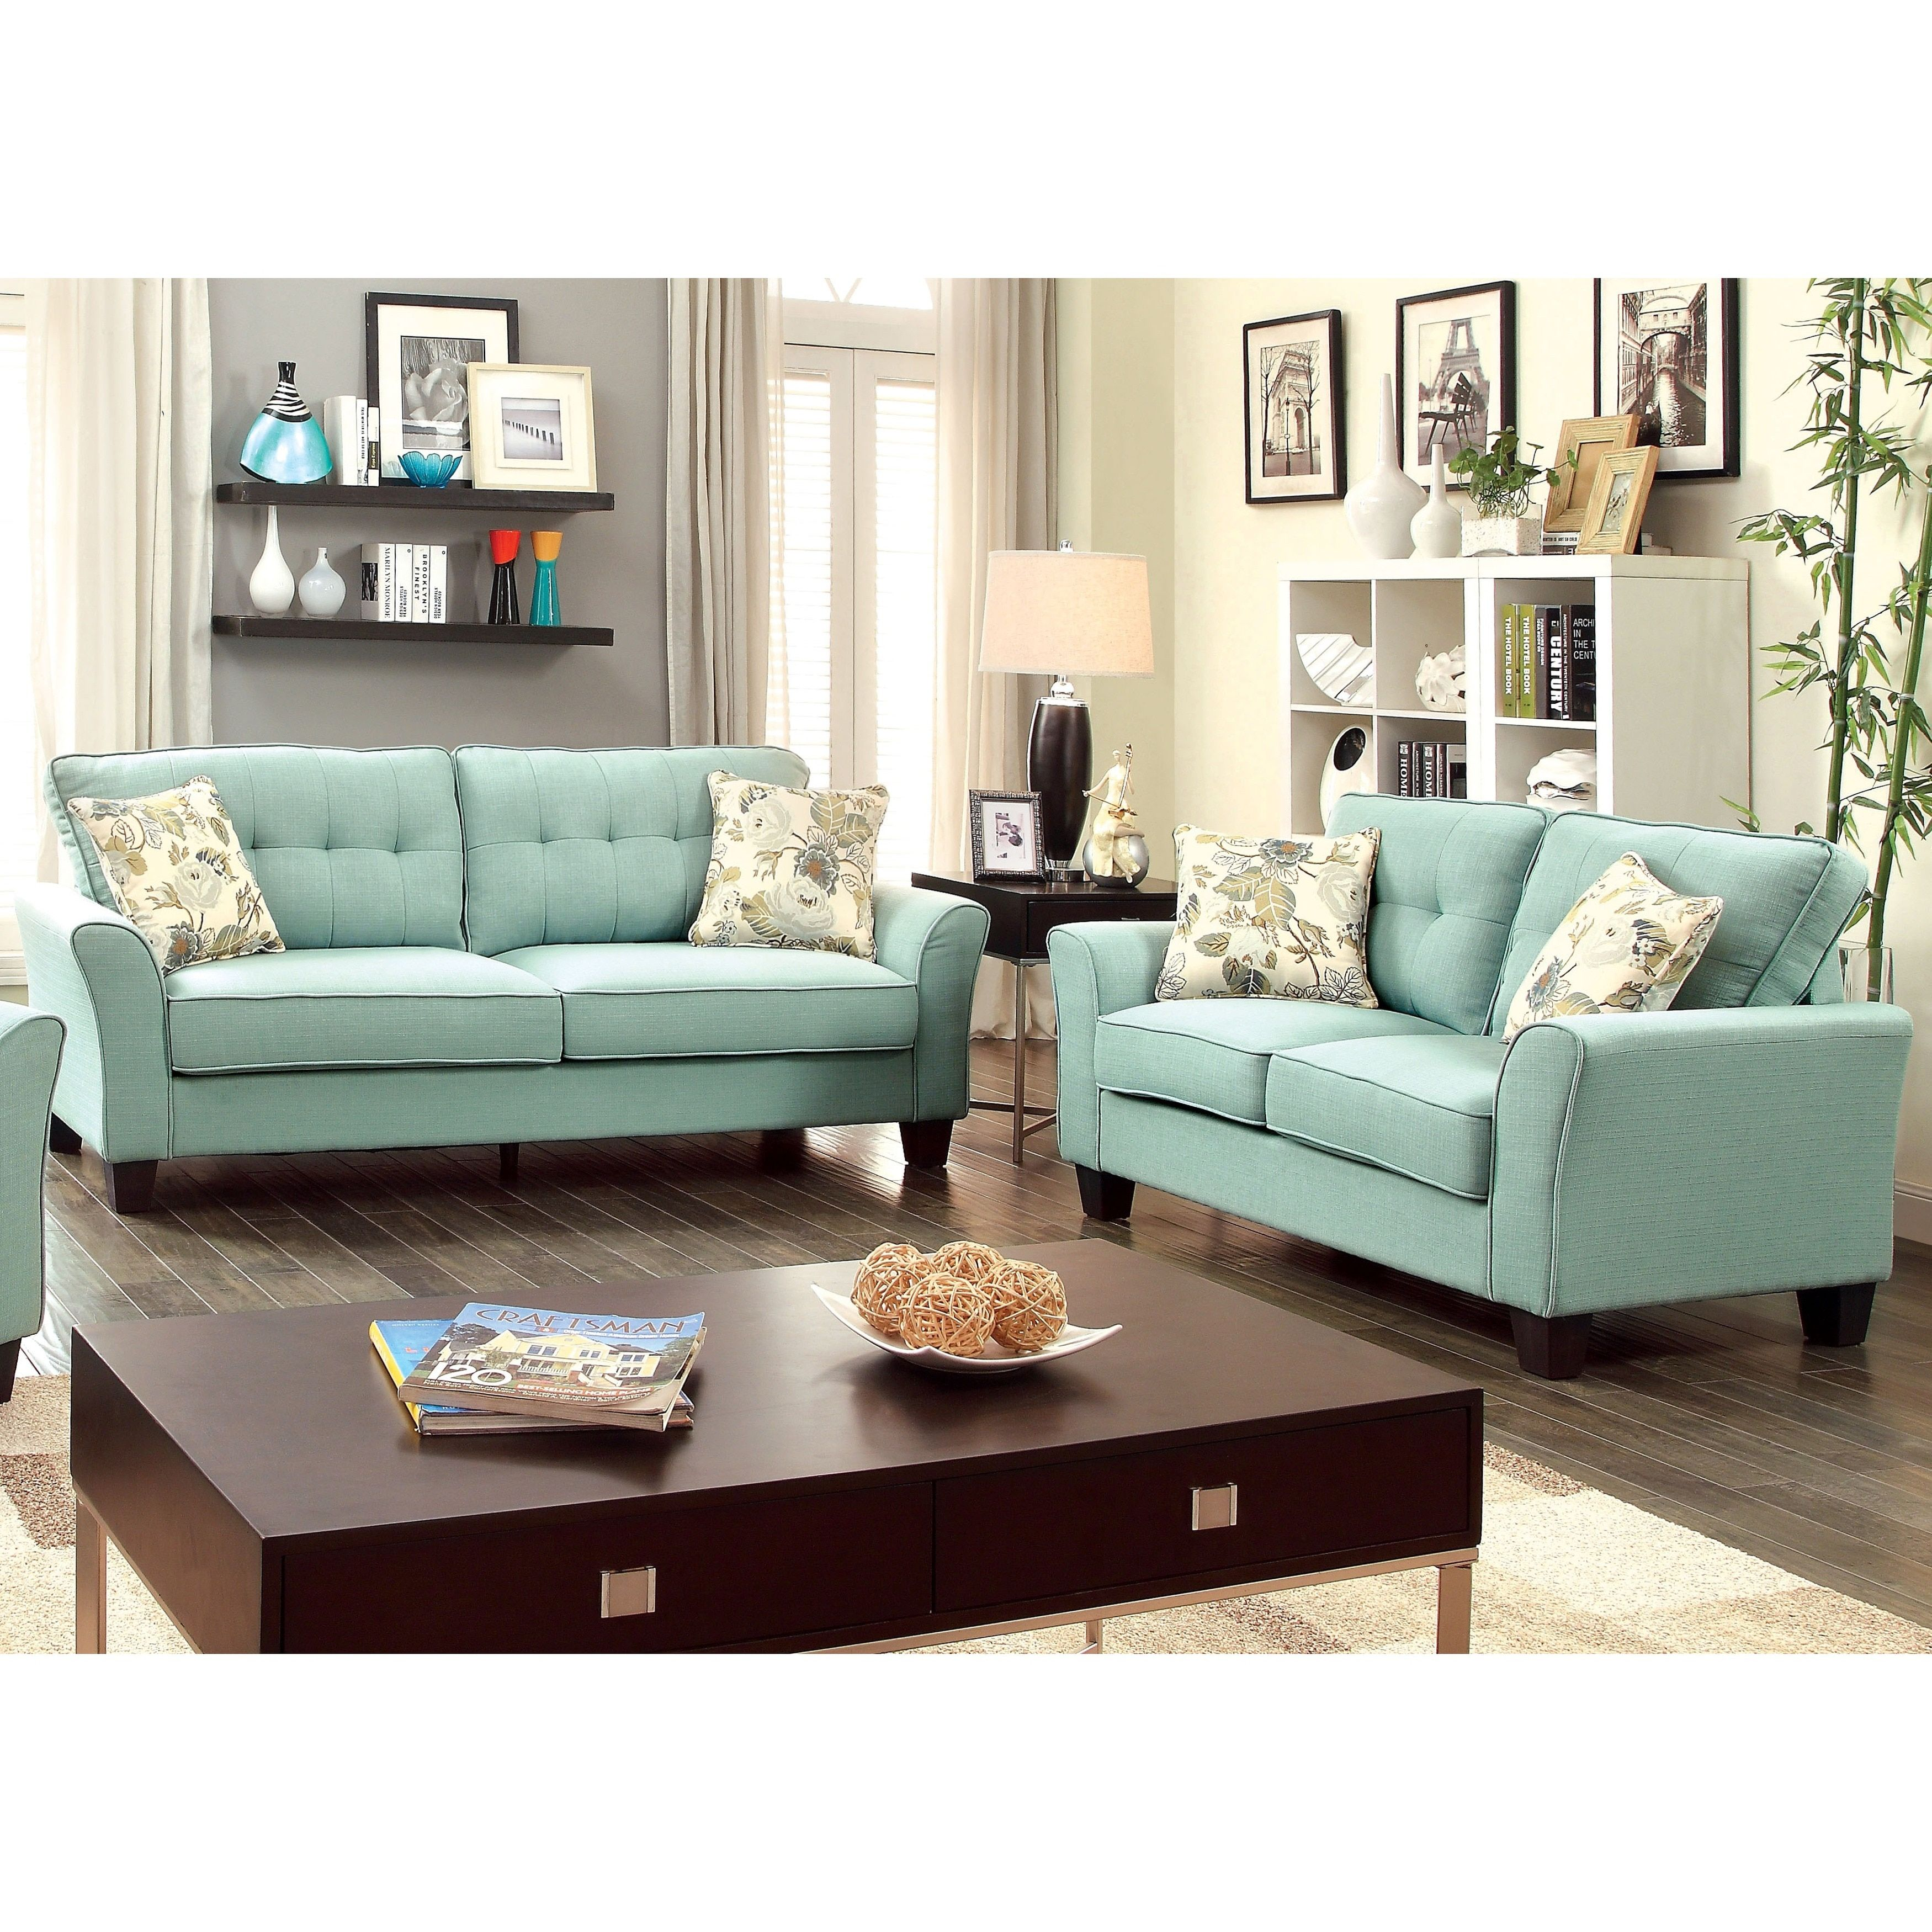 Furniture Of America Primavera Modern 2 Piece Linen Loveseat And Sofa Set Ping The Best Deals On Sofas Loveseats